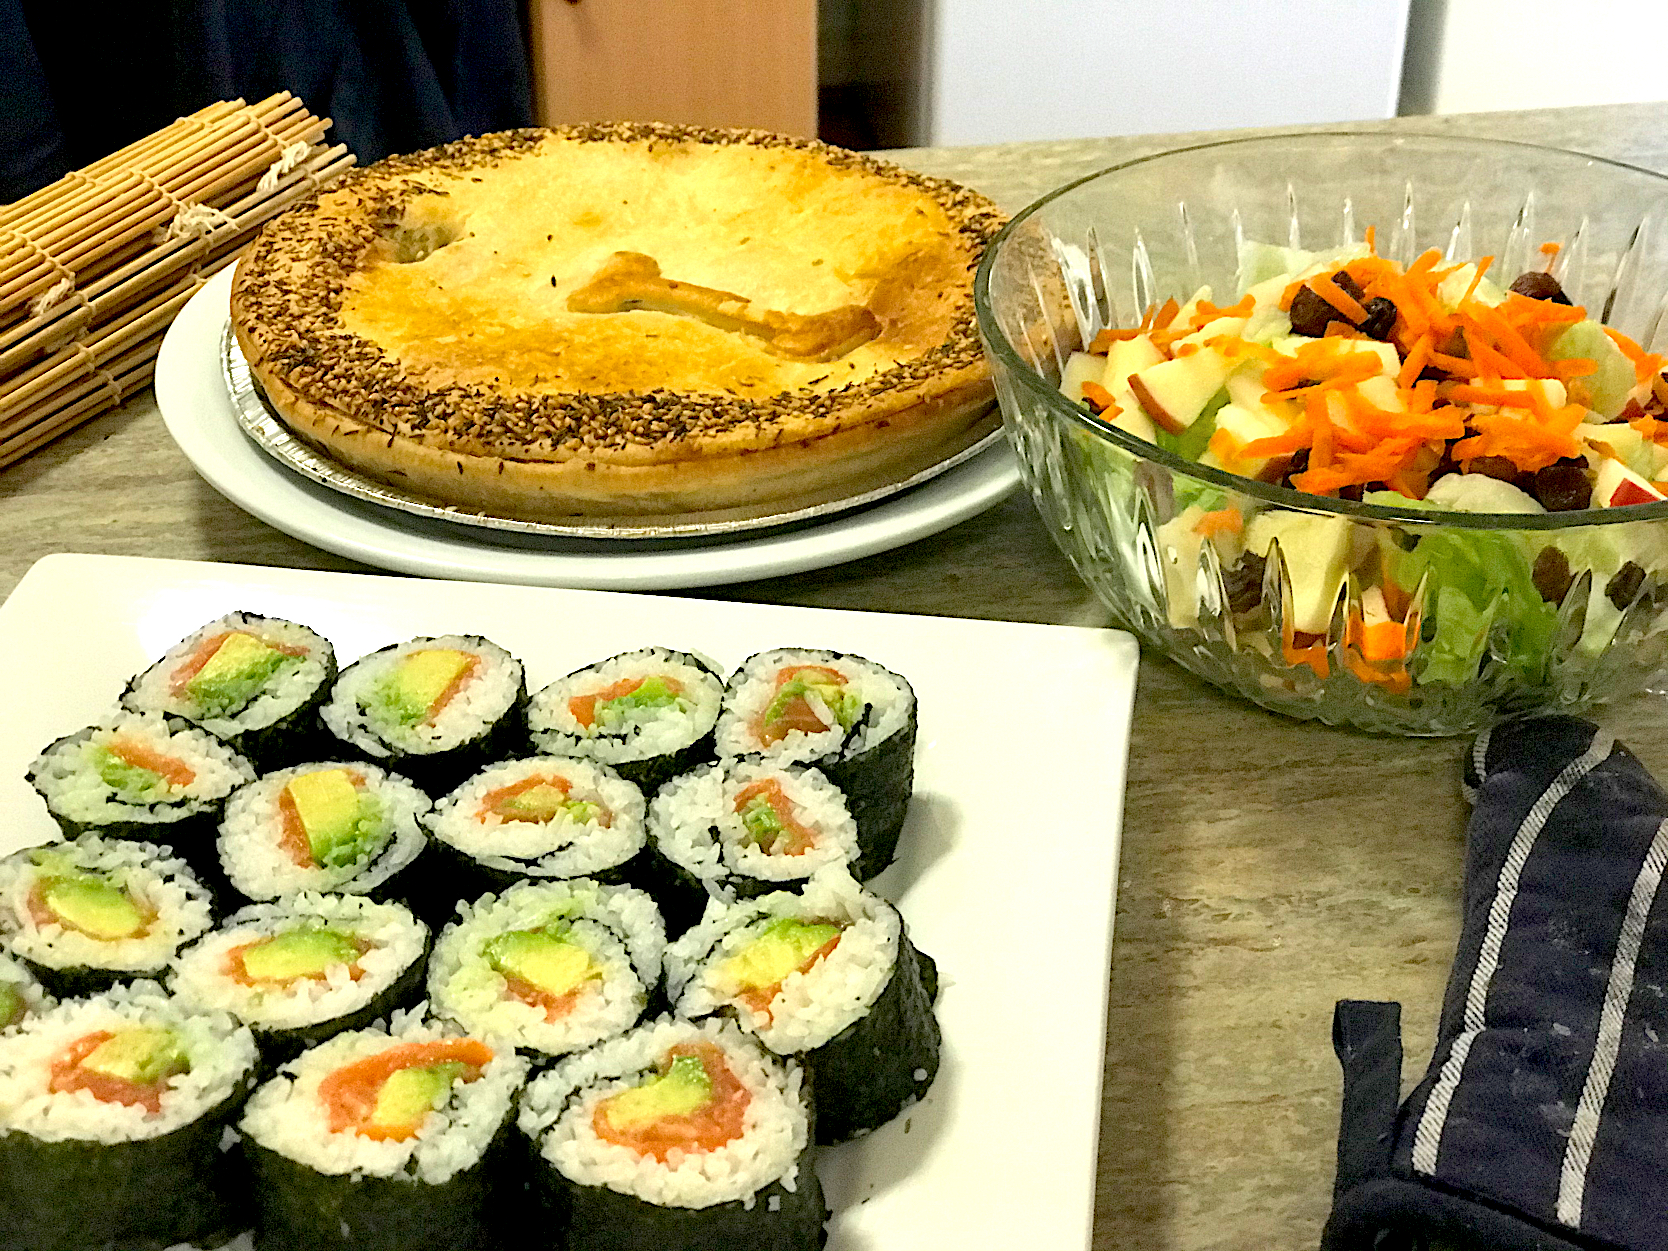 Chicken mushroom &leek pie #smoked salmon and avocado sushi roll with fresh veggies salad